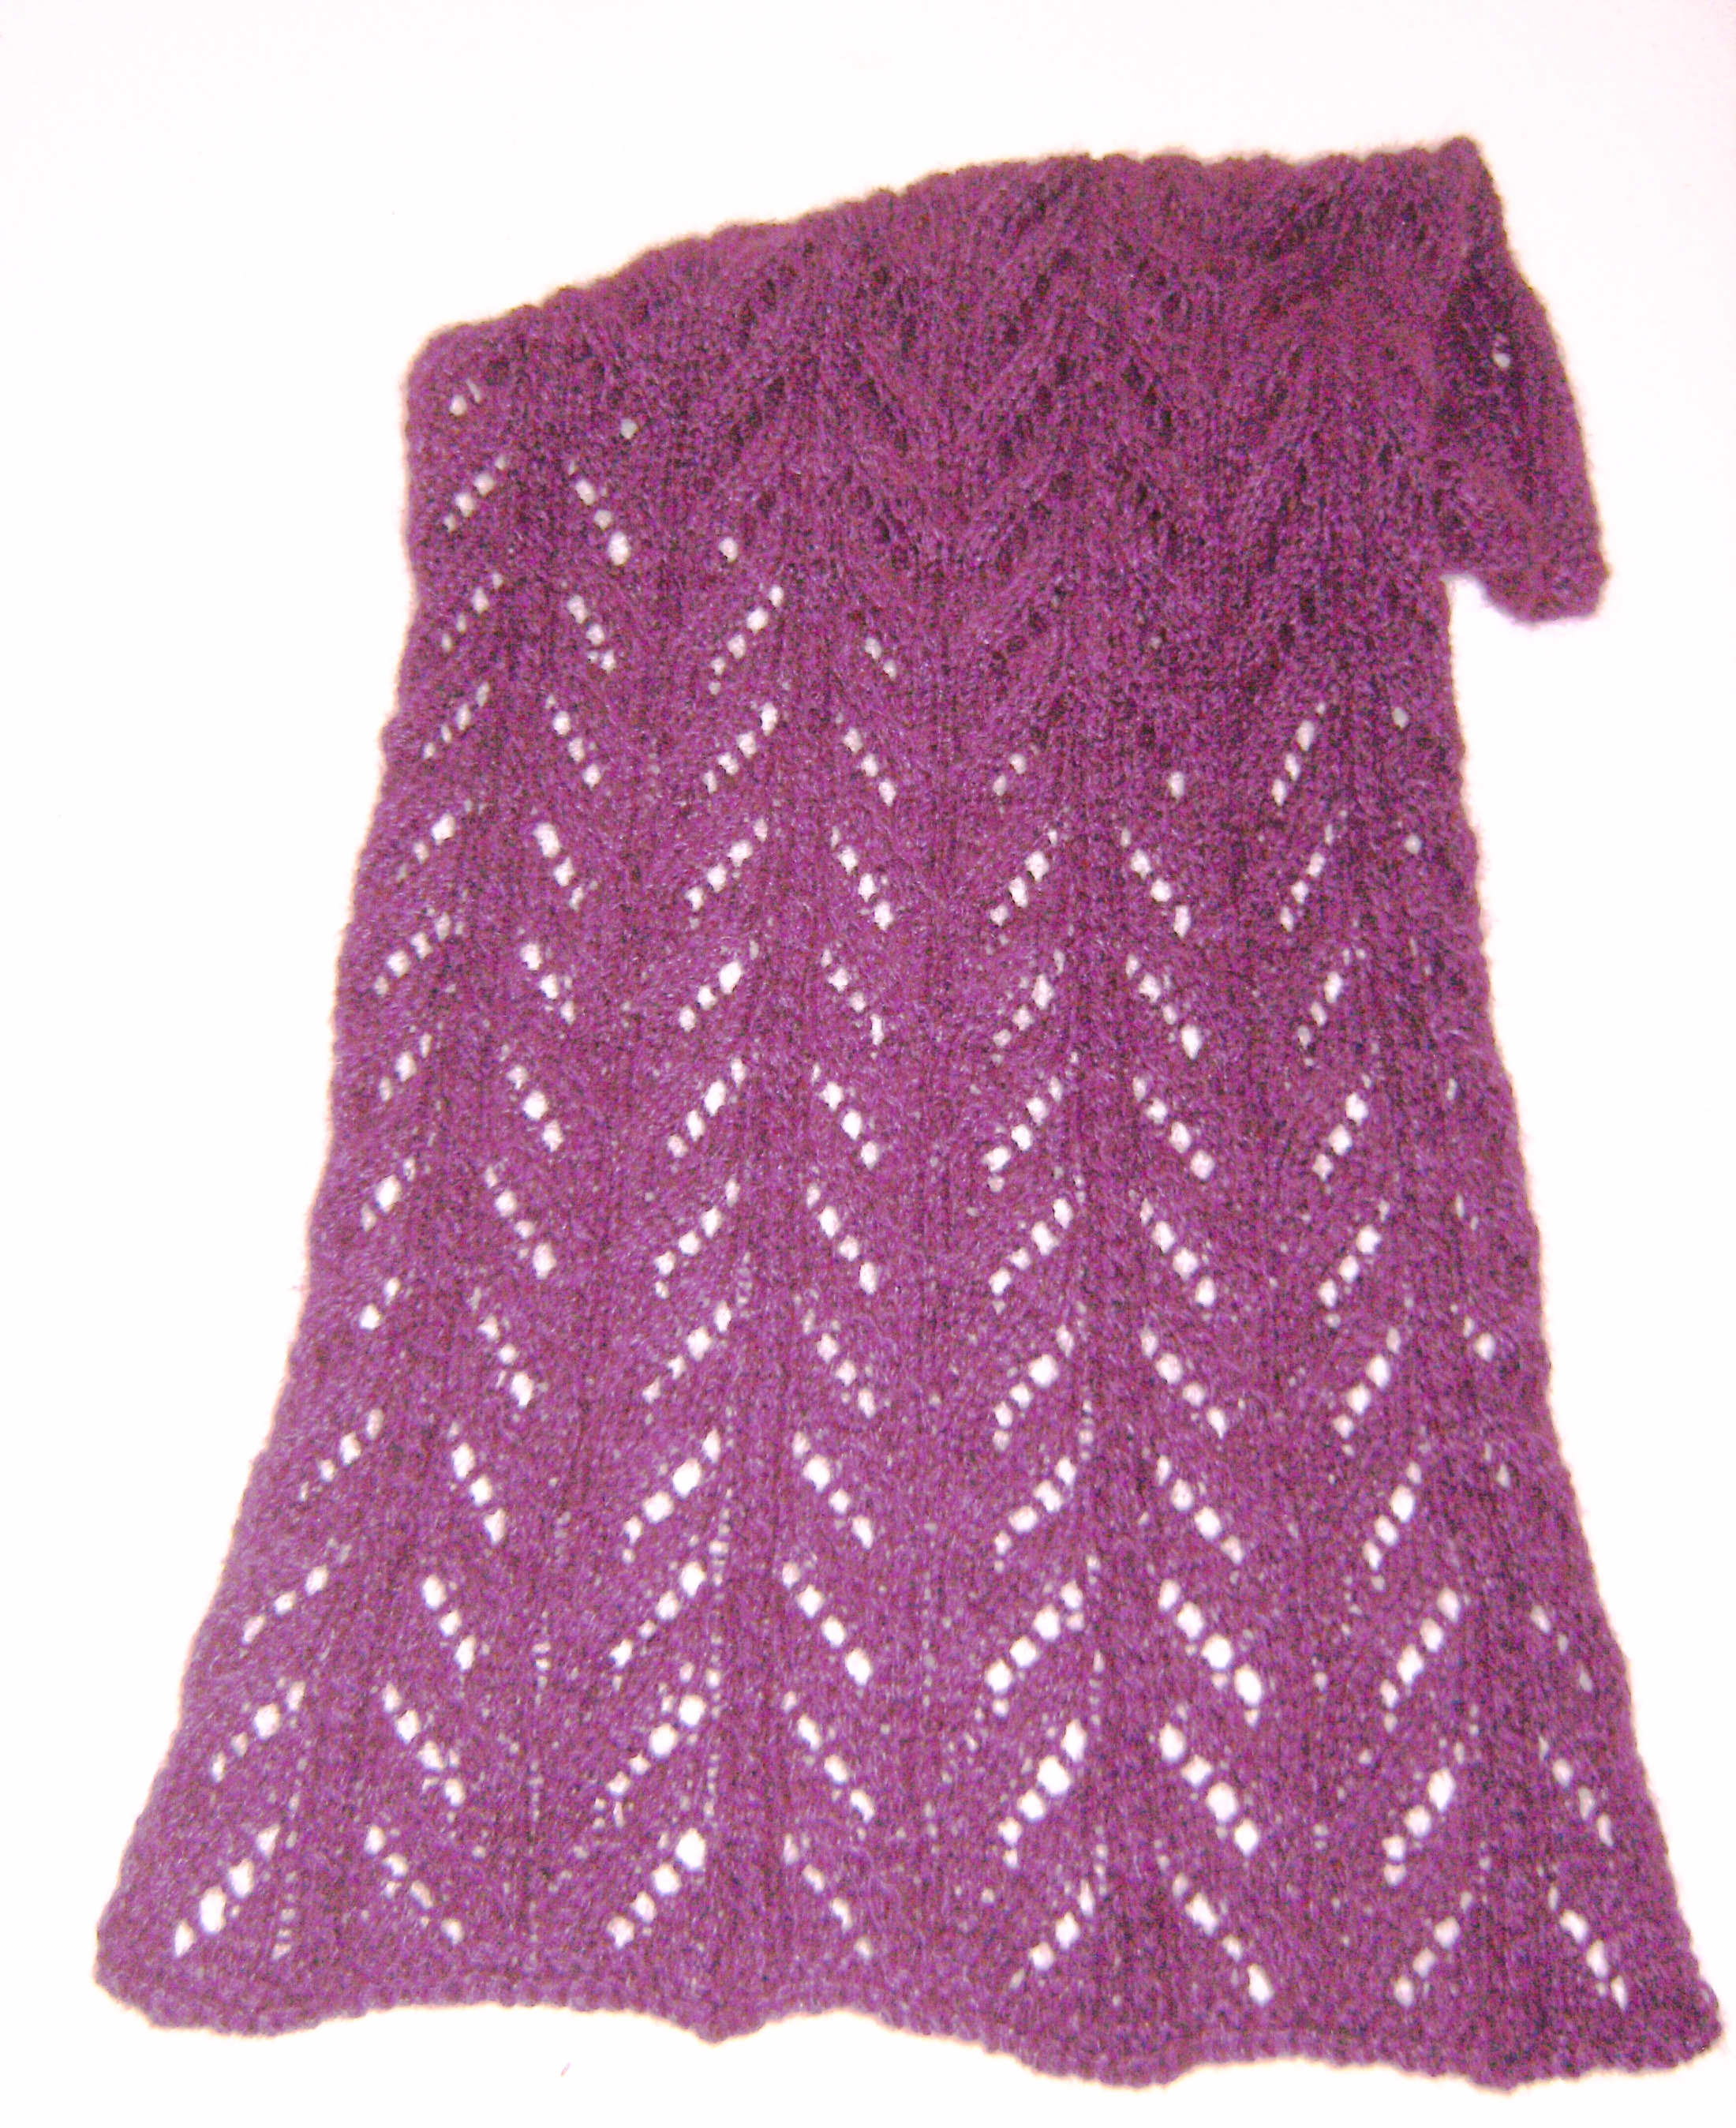 Beginner Knitting Patterns Scarves : Scarf Patterns For Beginners Patterns Gallery